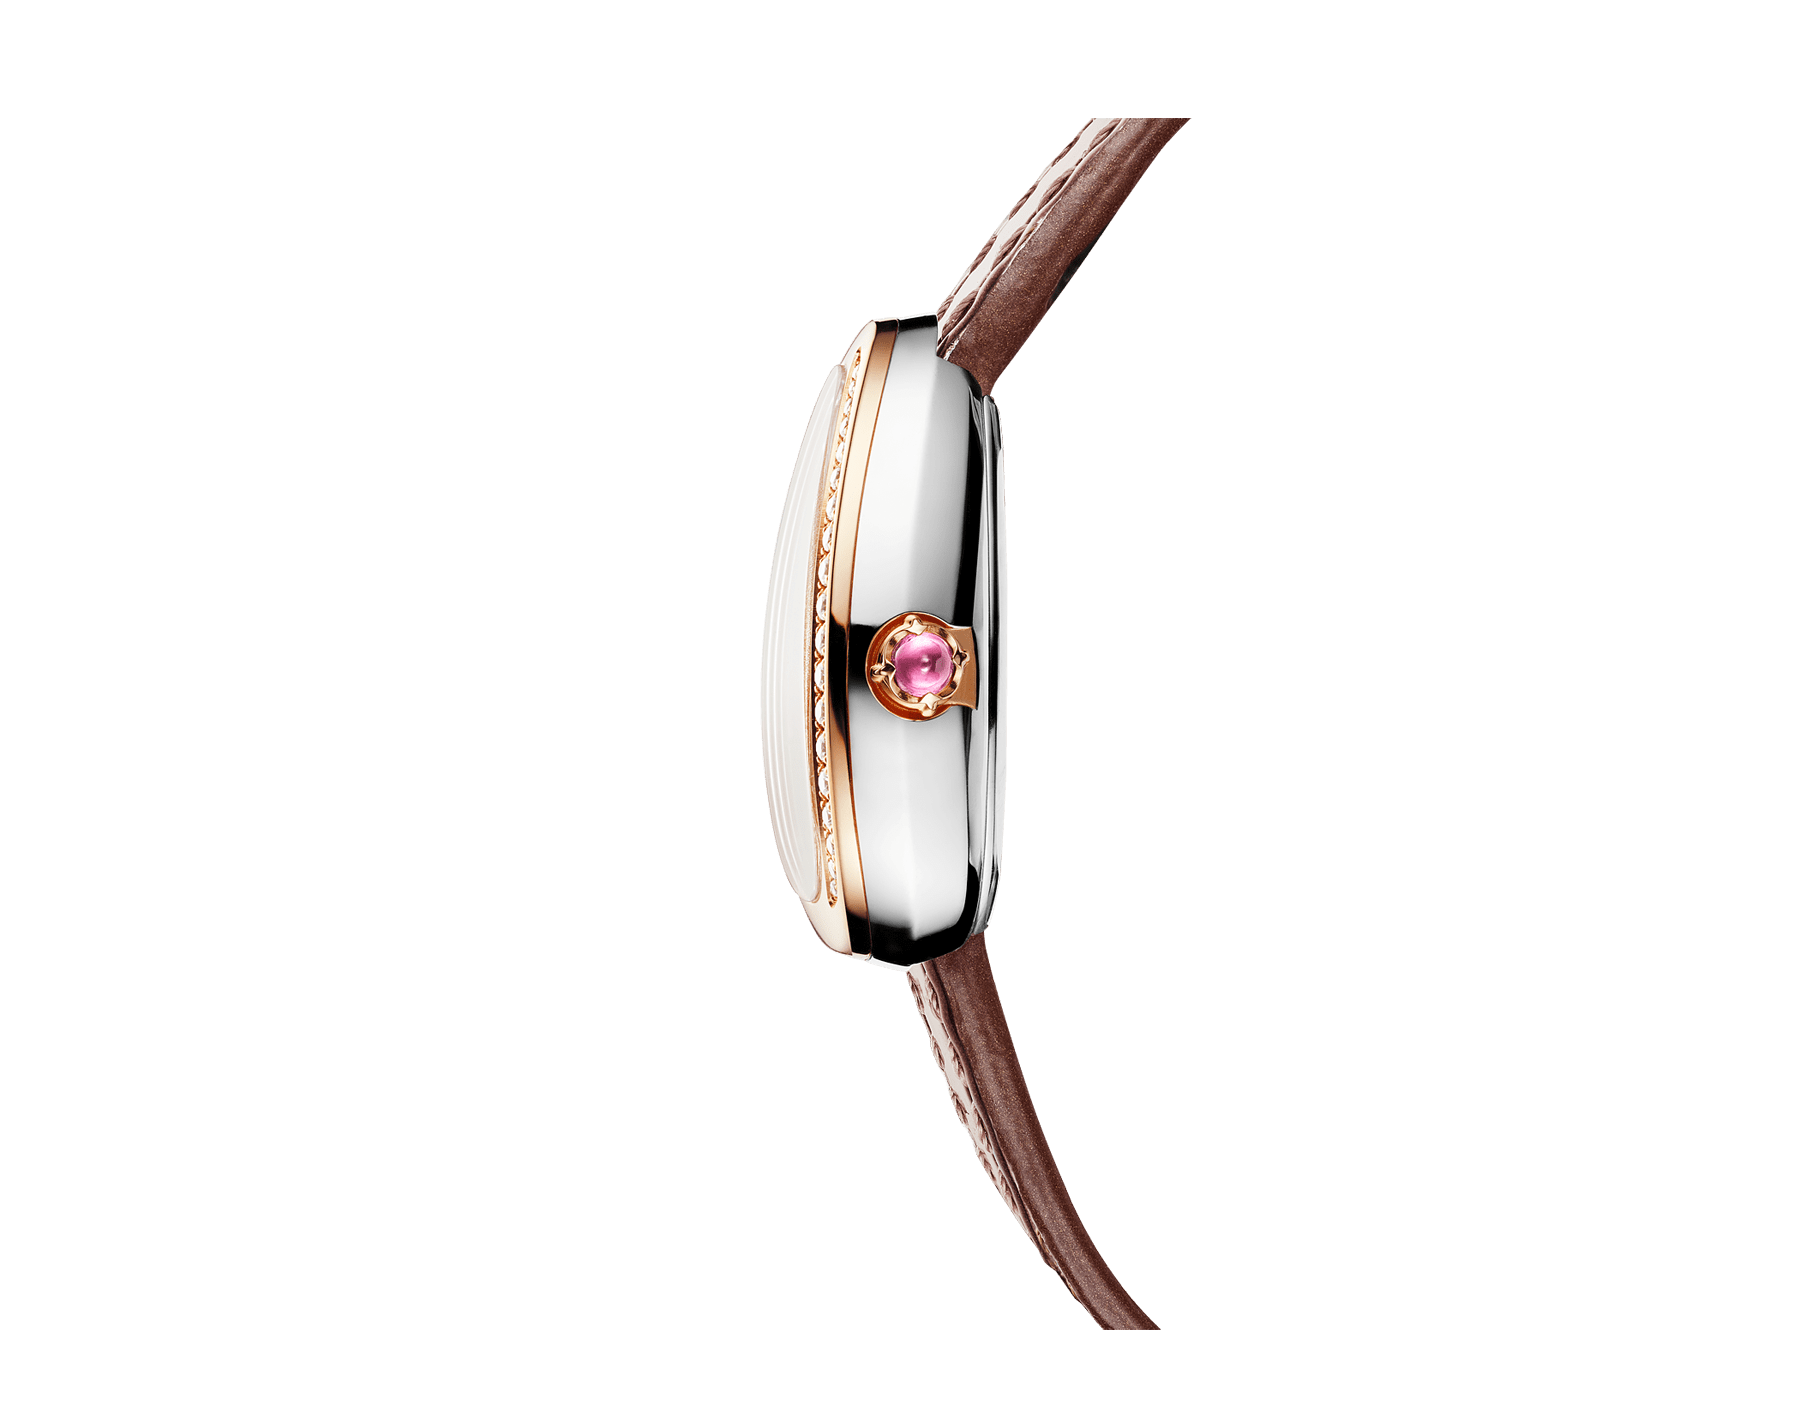 Serpenti watch with stainless steel case, 18 kt rose gold bezel set with round brilliant-cut diamonds, white mother-of-pearl dial and interchangeable double spiral bracelet in brown leather 103059 image 2